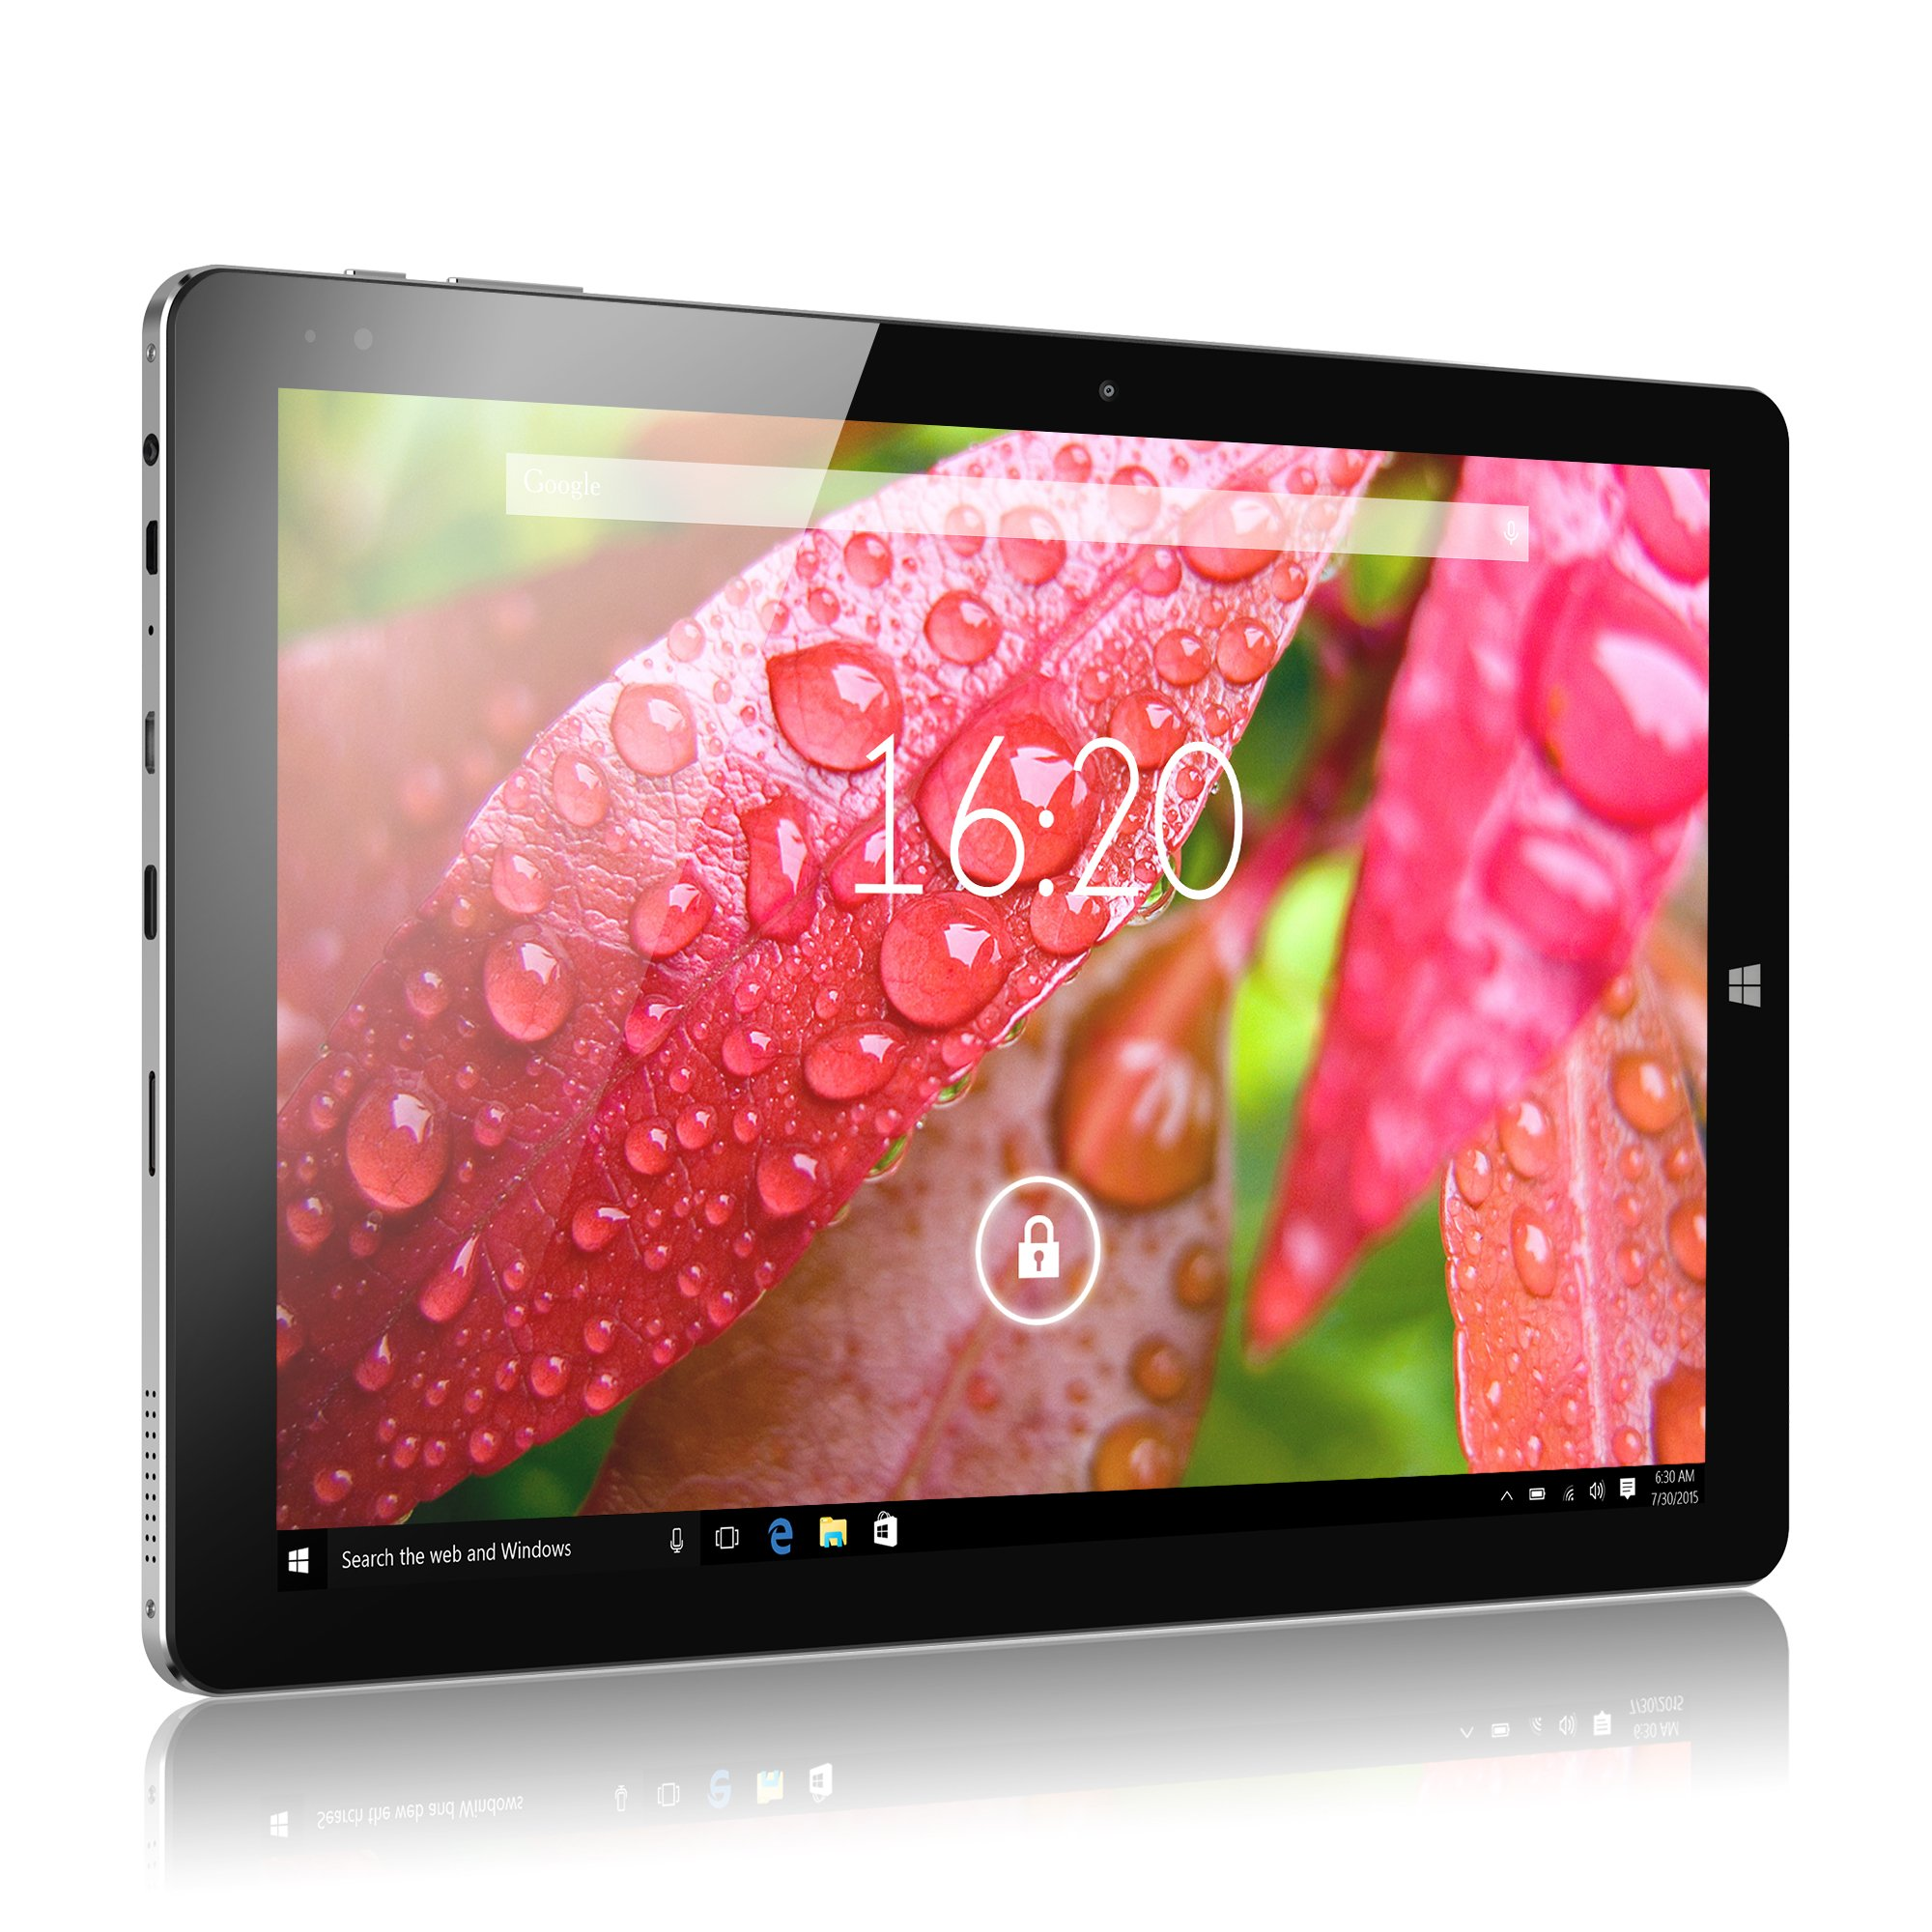 Windows Tablet, CHUWI Hi10 Plus Windows 10/Android 5.1 Dual Boot 2-in-1 Tablet PC, 10.8'' Full HD Display, featuring Intel X5 Cherry Trail Z8350 Quad Core, 4GB RAM/64GB ROM and Wifi